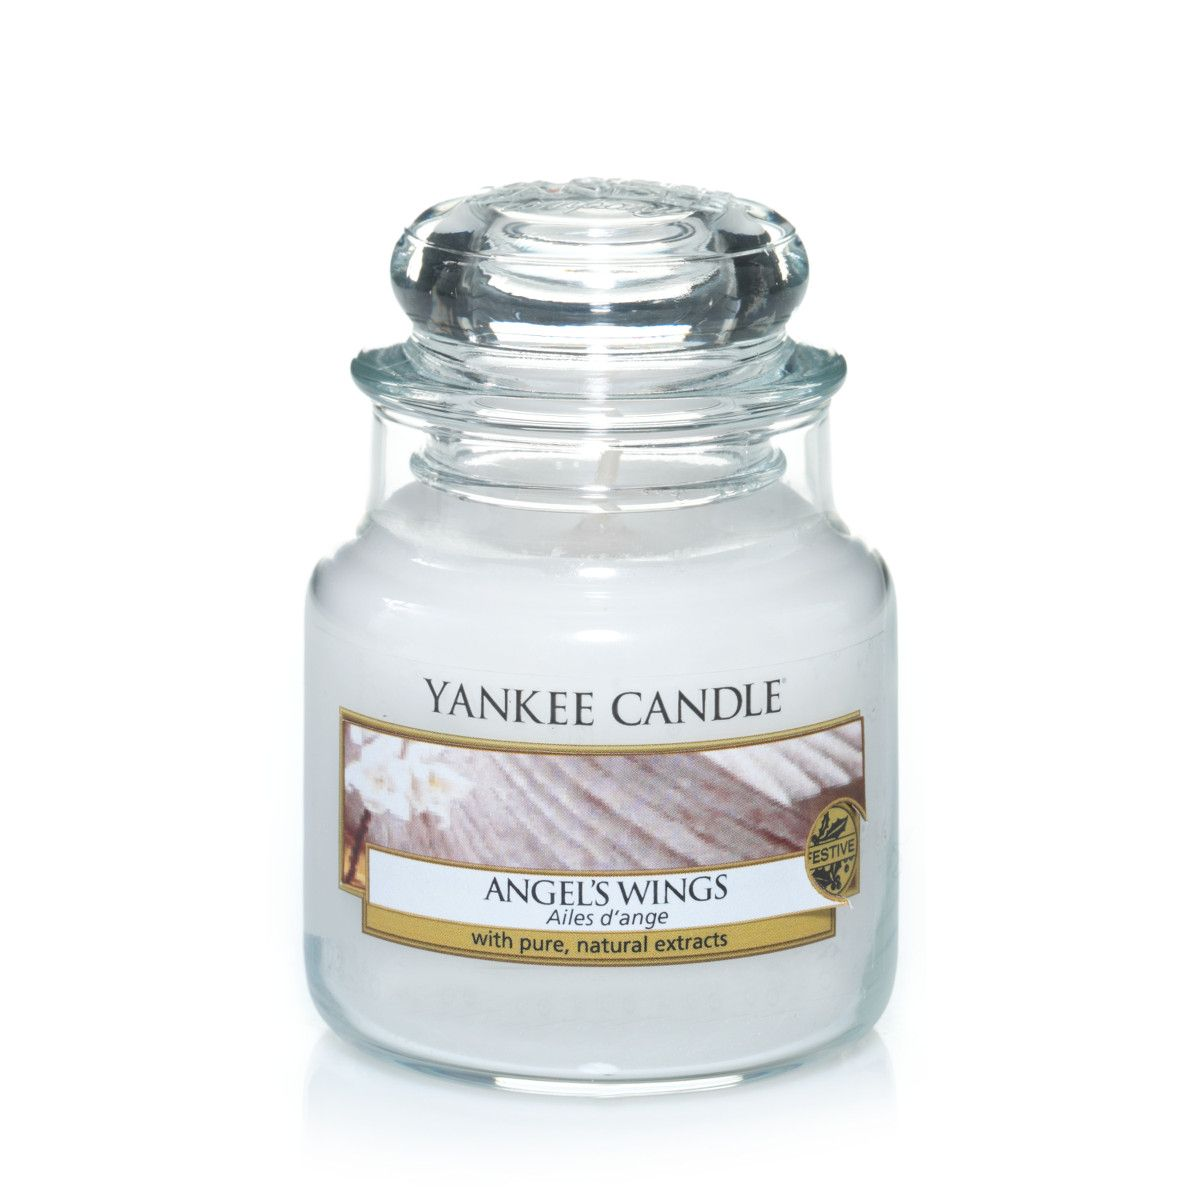 Image of Yankee Candle Angel wings small jar